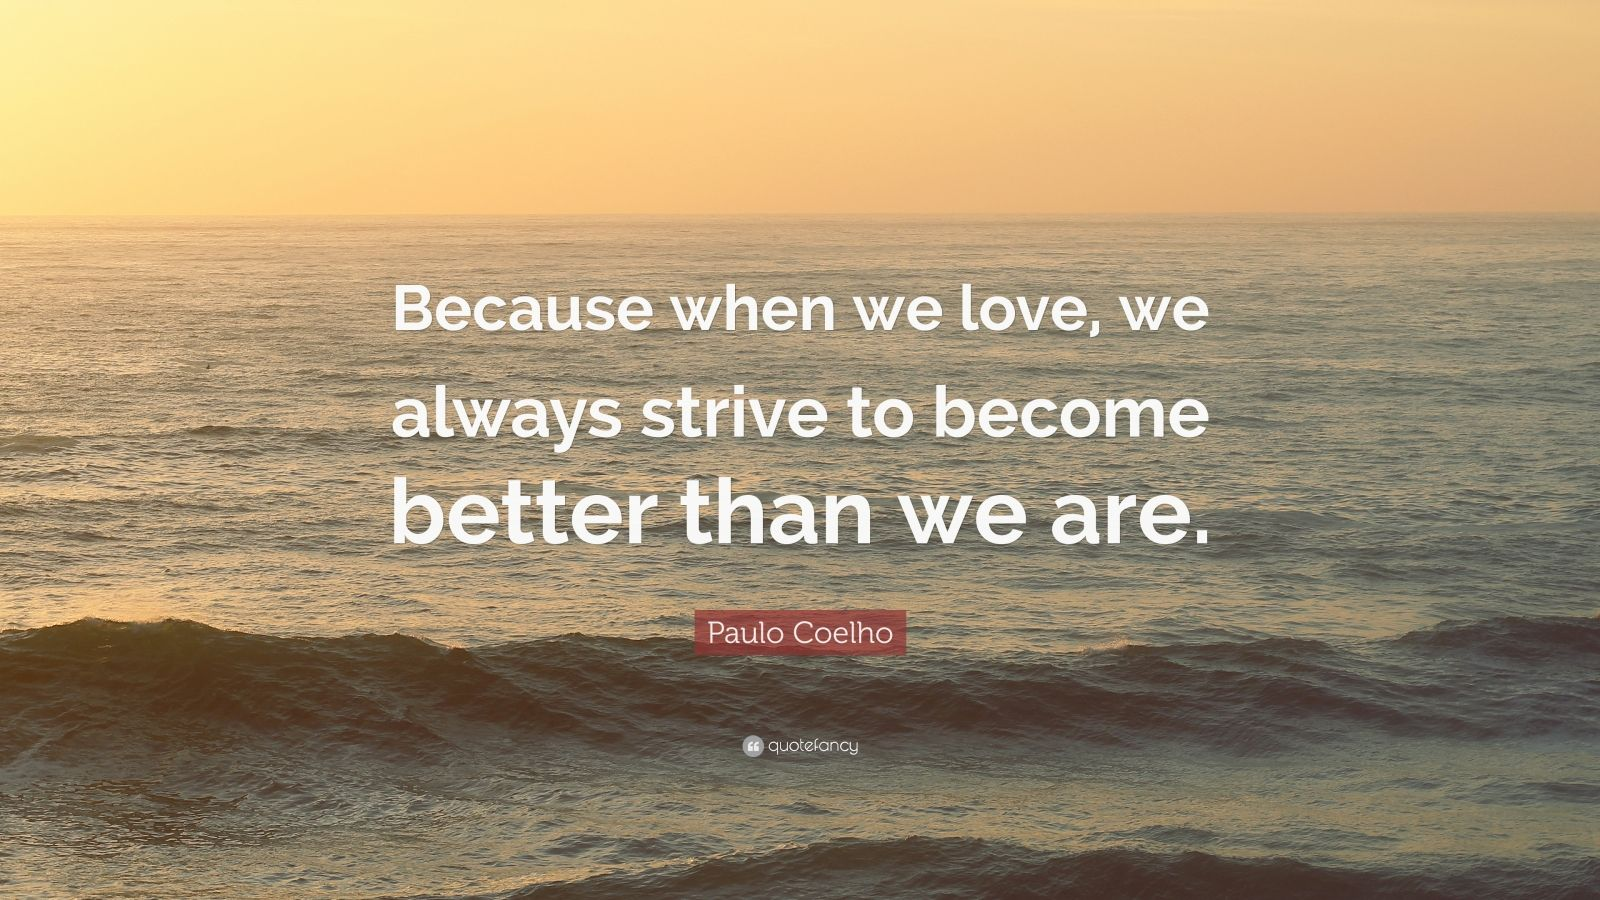 """Paulo Coelho Quote: """"Because when we love, we always strive to become better than we are."""""""